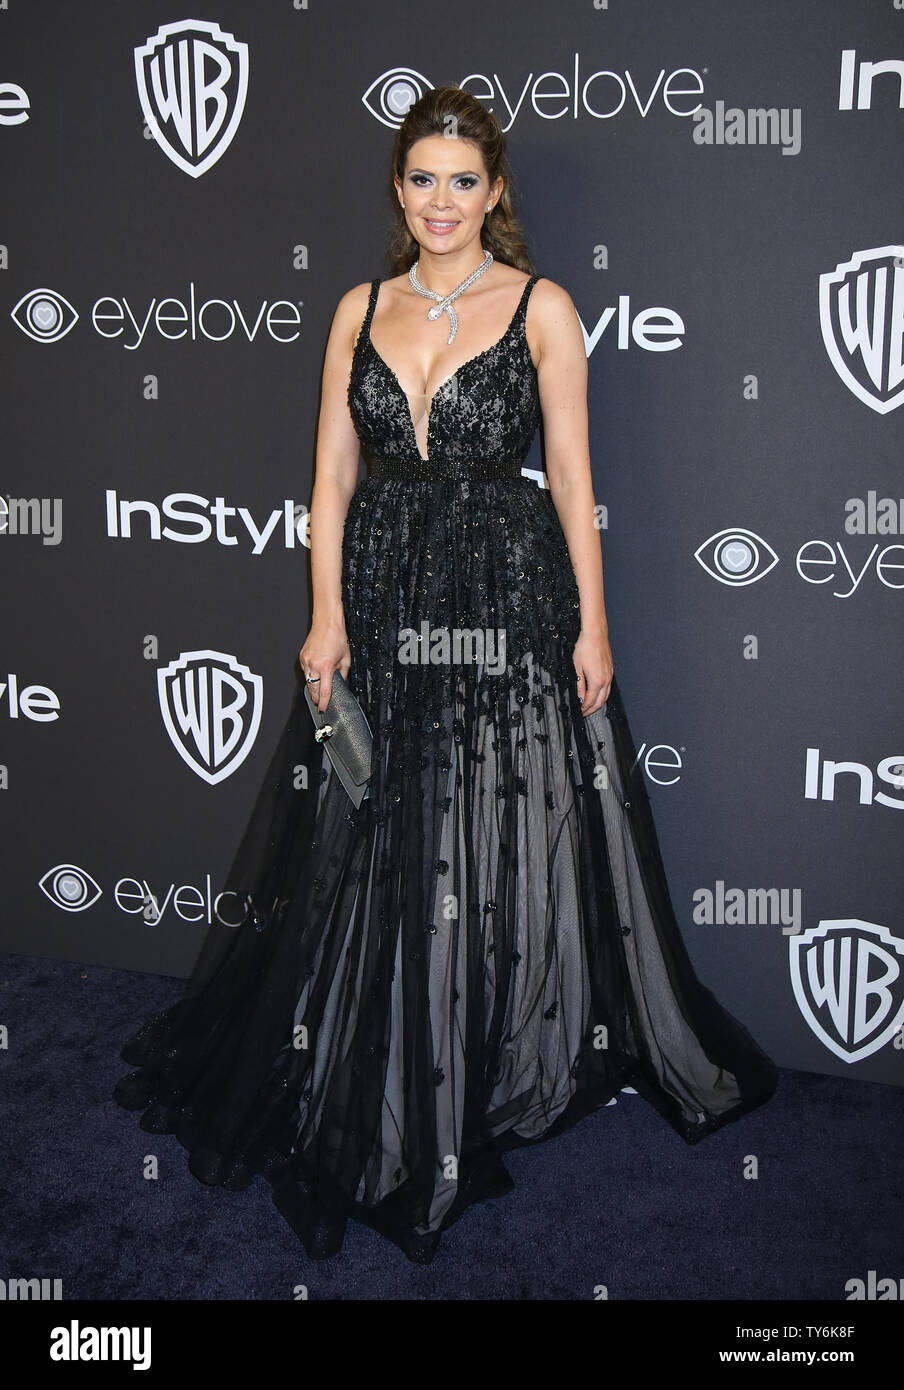 Carly Steel attends the 18th annual InStyle and Warner Bros. Golden Globe after-party at the Beverly Hilton Hotel in Beverly Hills, California on January 8, 2017.  Photo by David Silpa/UPI - Stock Image